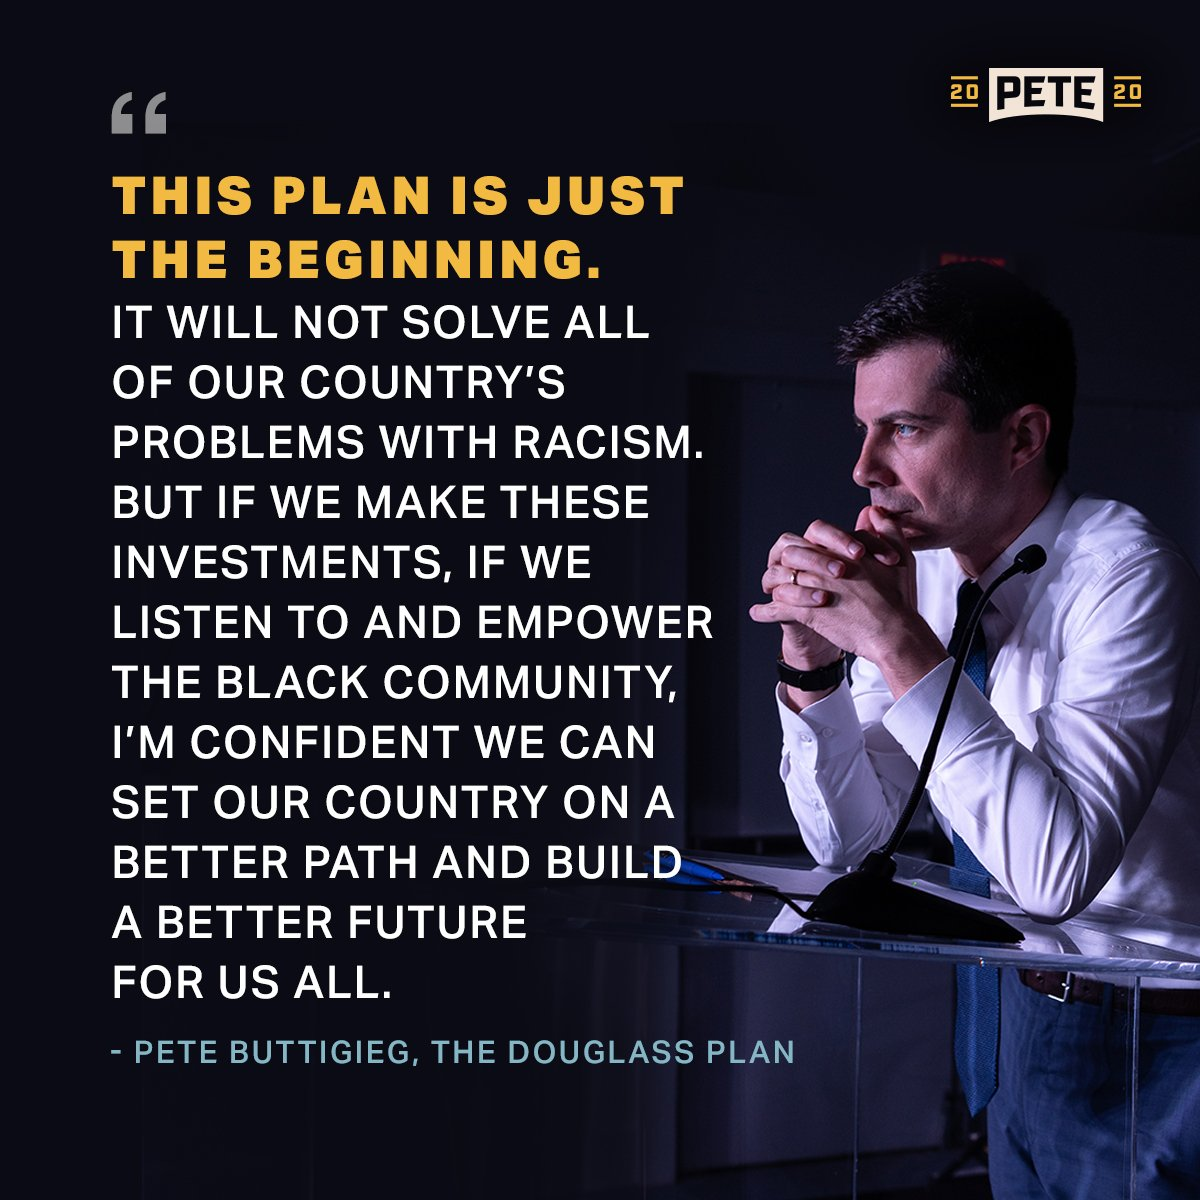 If we don't tackle racial injustice, it will upend the American Project in my lifetime. #DemDebate